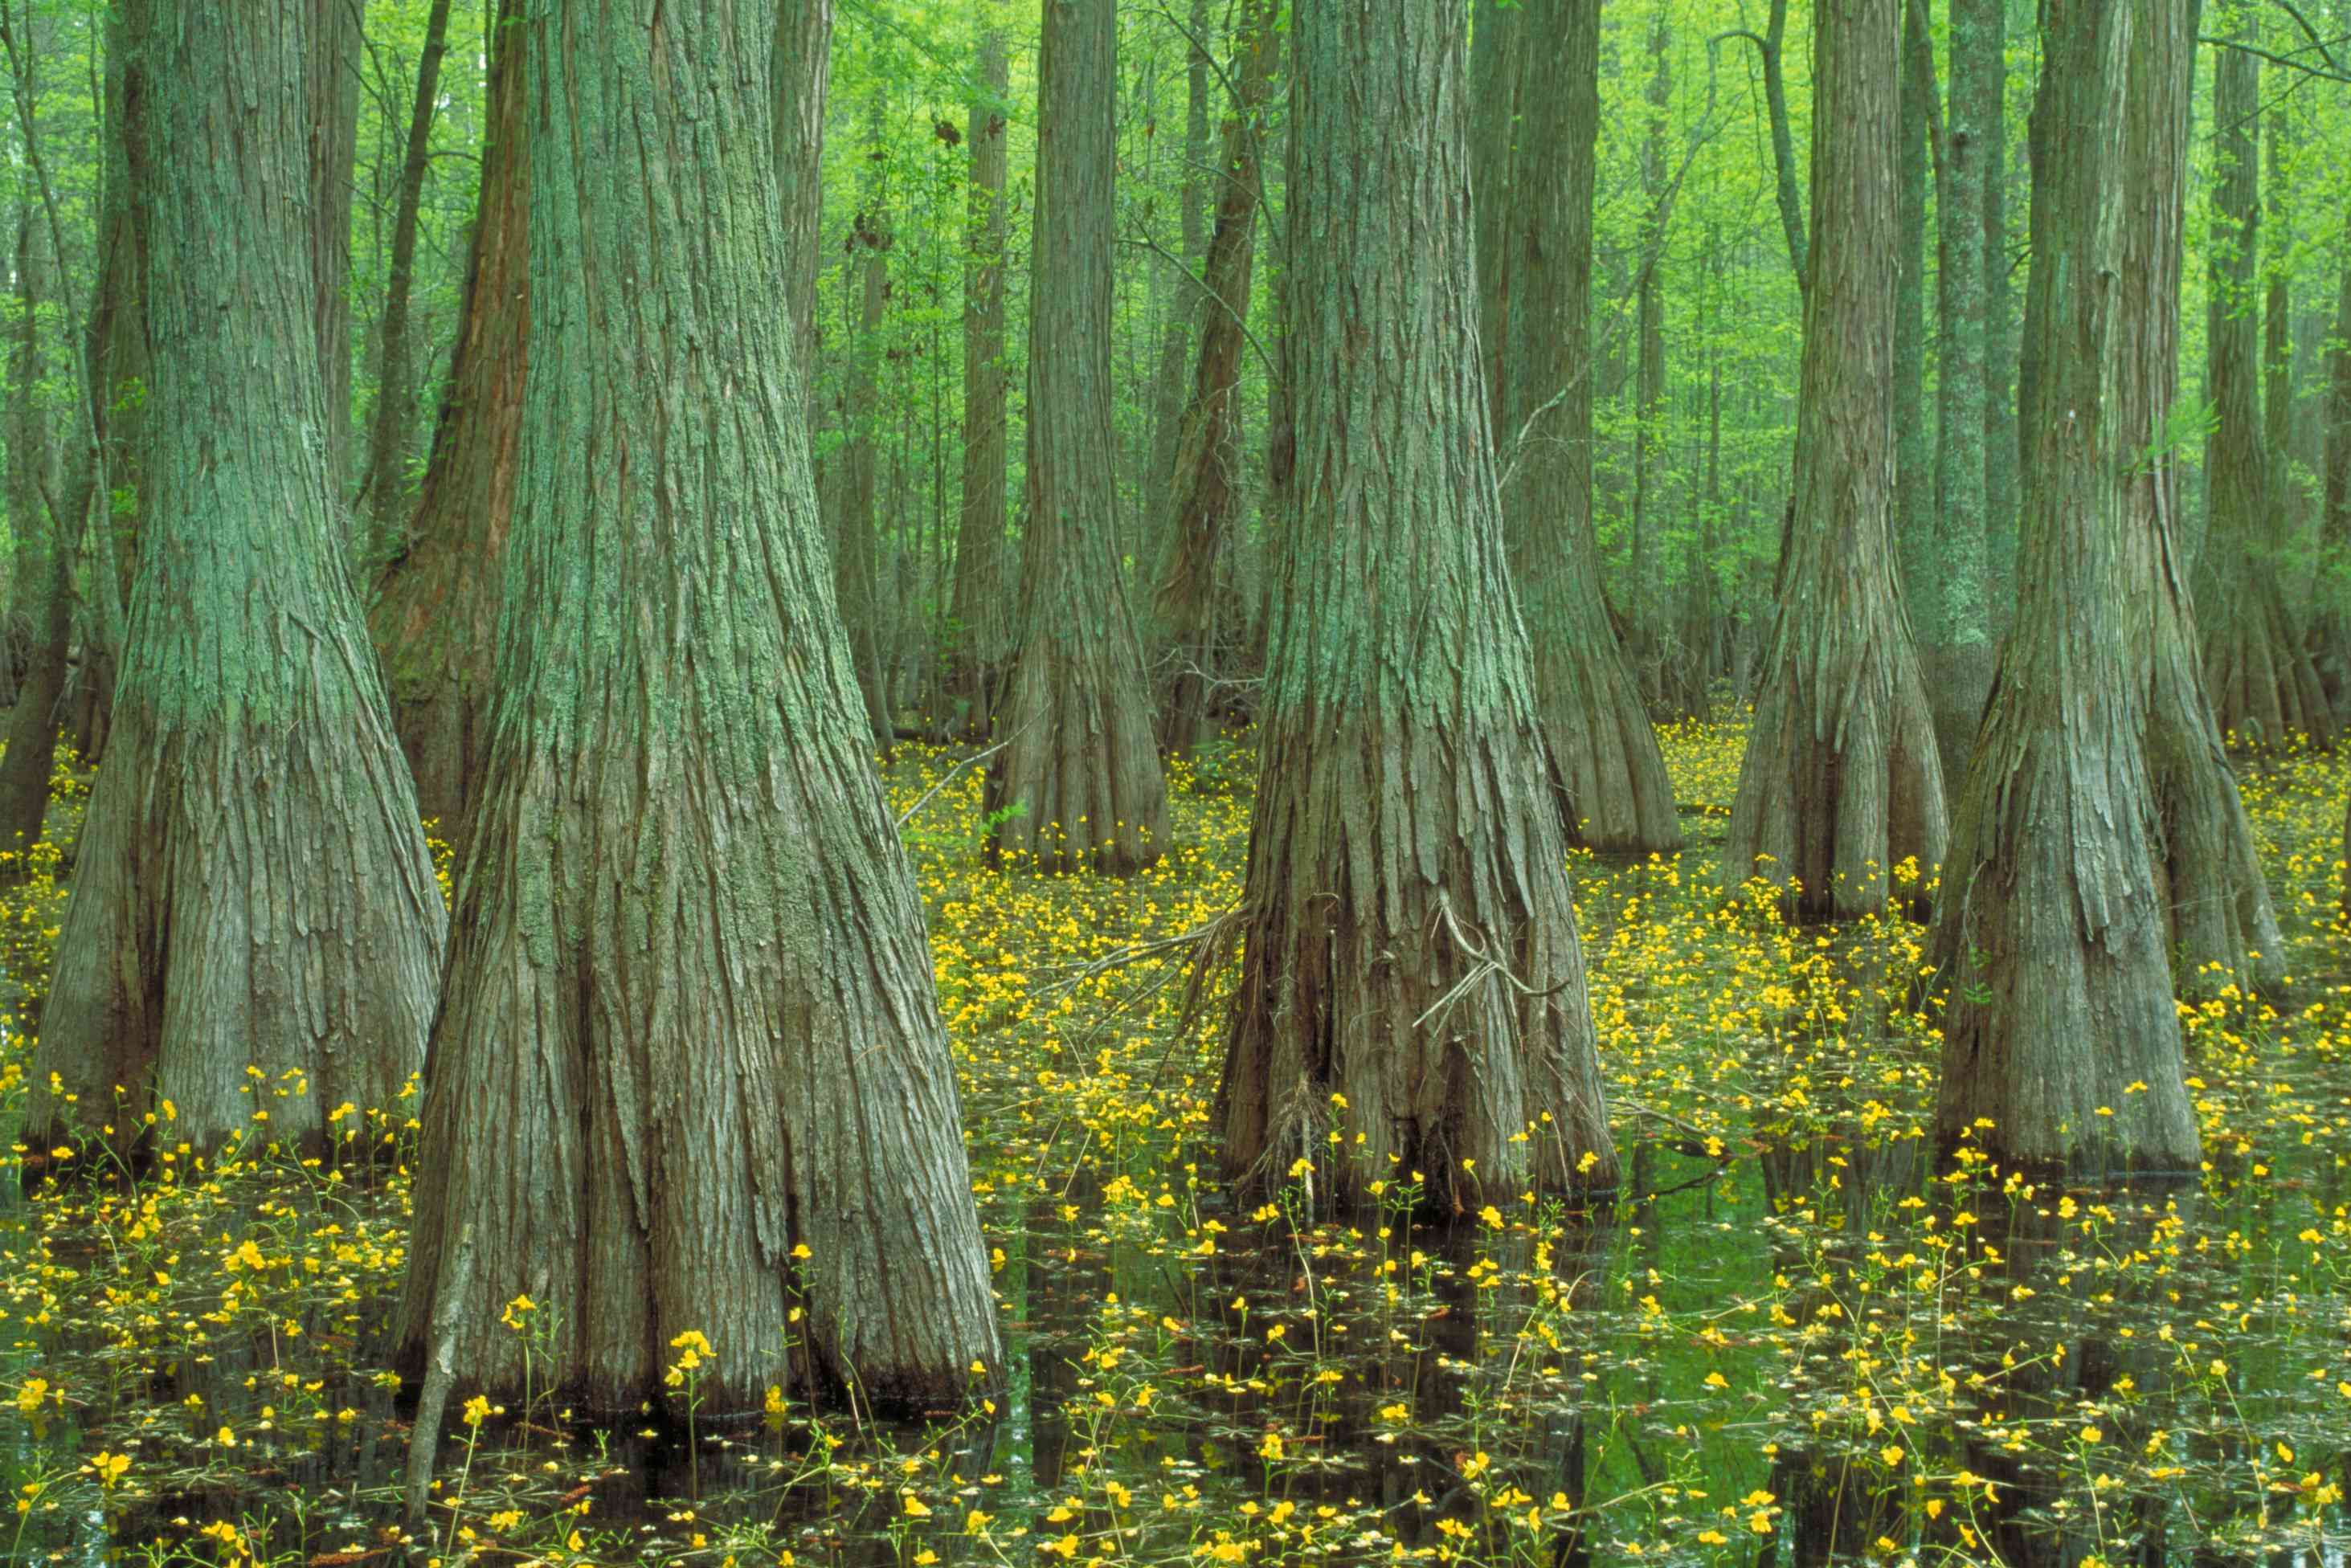 Trunks of cypress trees sourrounded by small yellow flowers of bladderwort